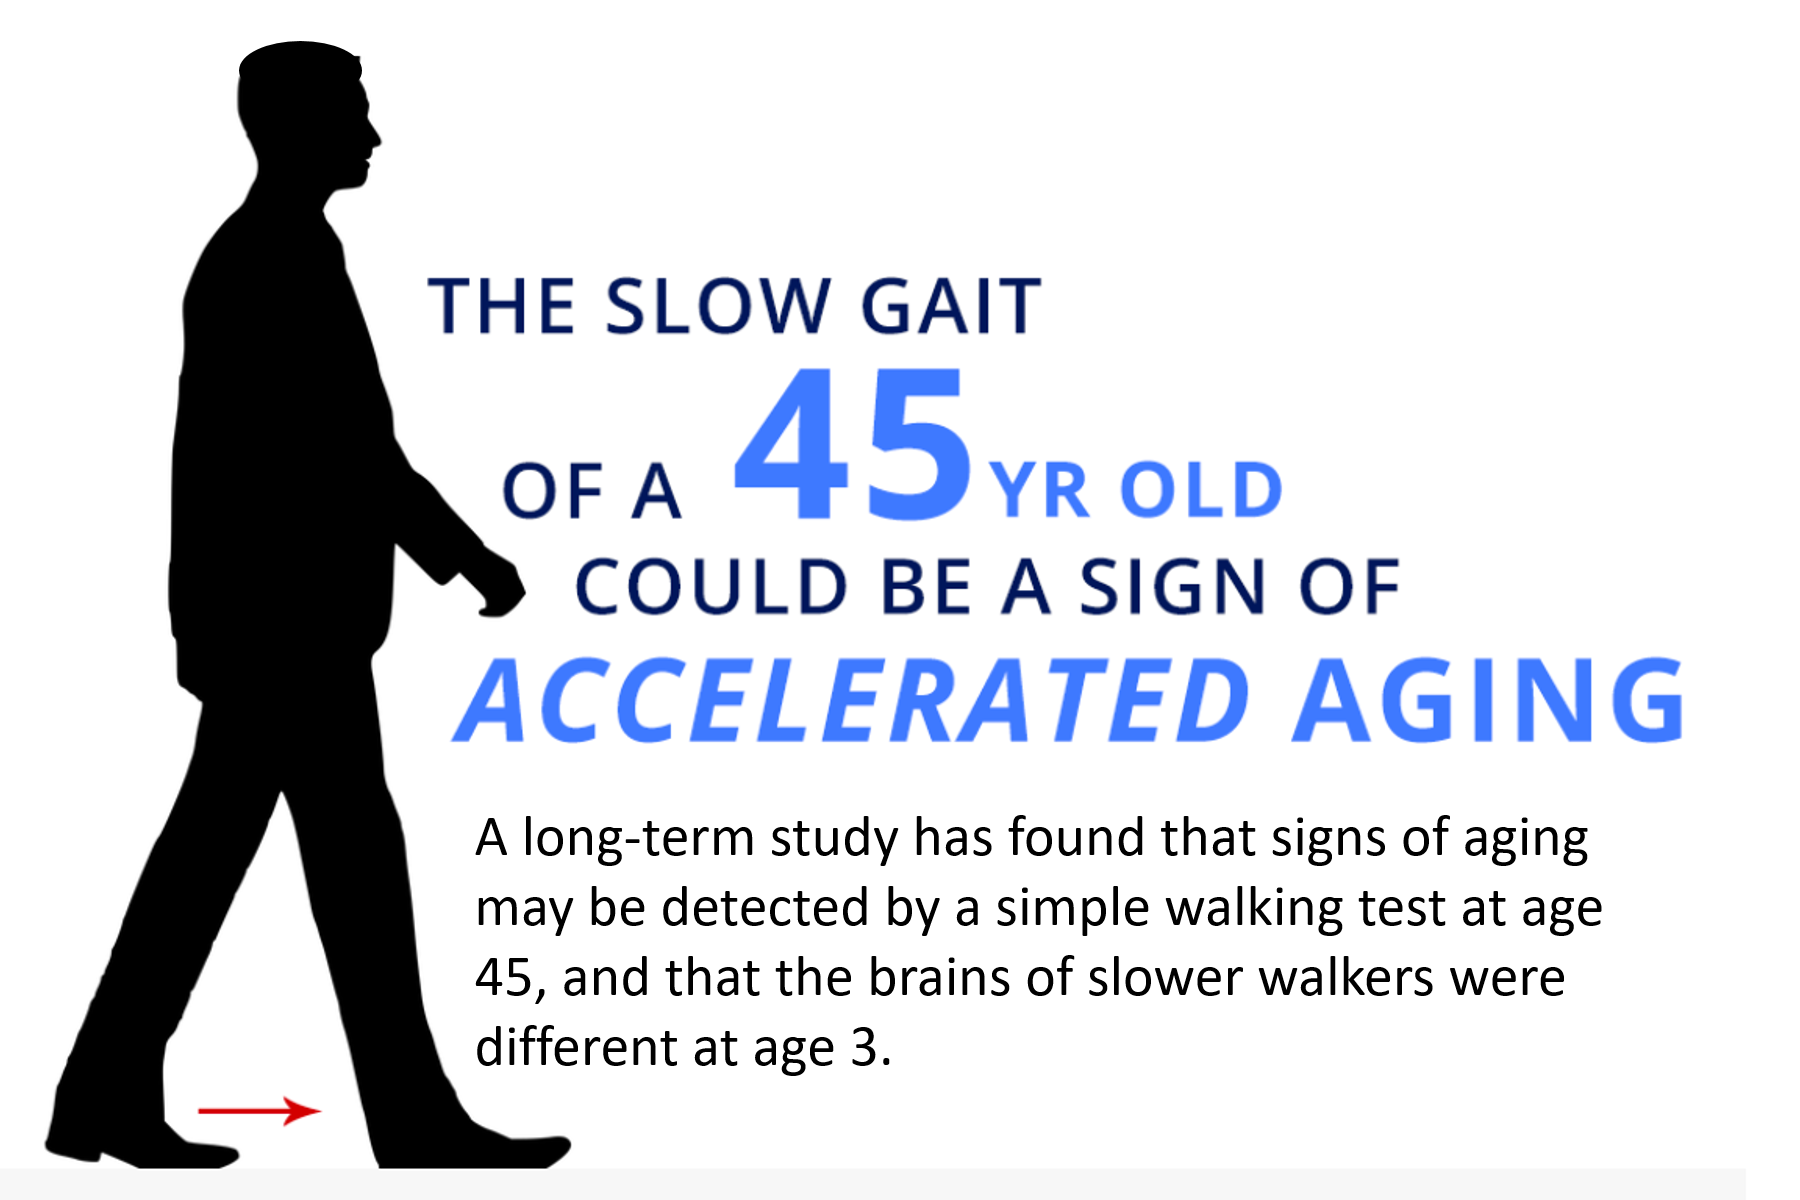 DUPRI Research Scholars Moffitt and Caspi's Gait Speed Study  in  JAMA Network Open